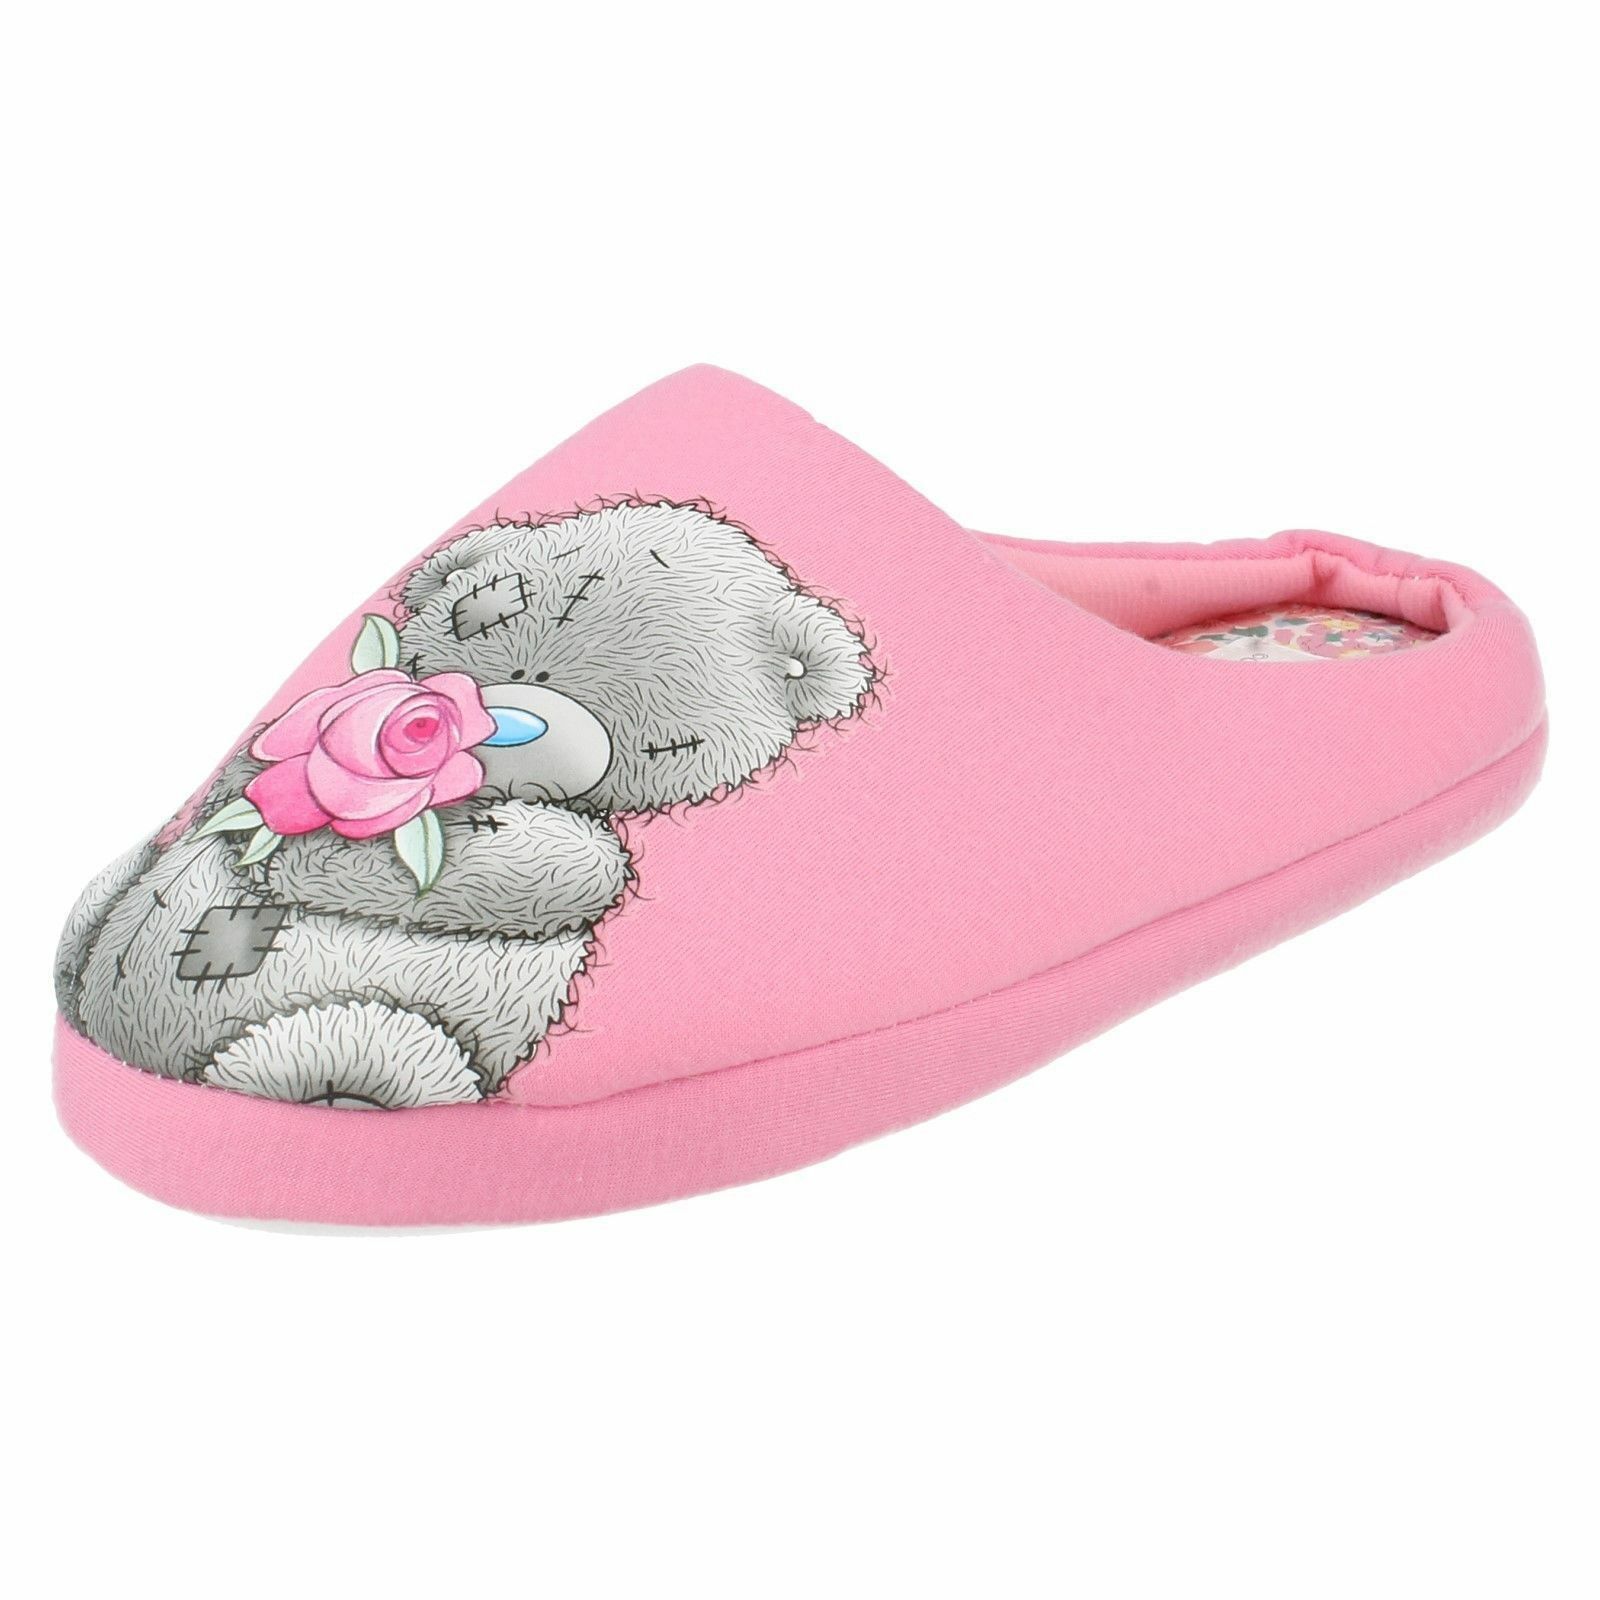 Ladies Tatty Teddy Mule Slippers - Me To You